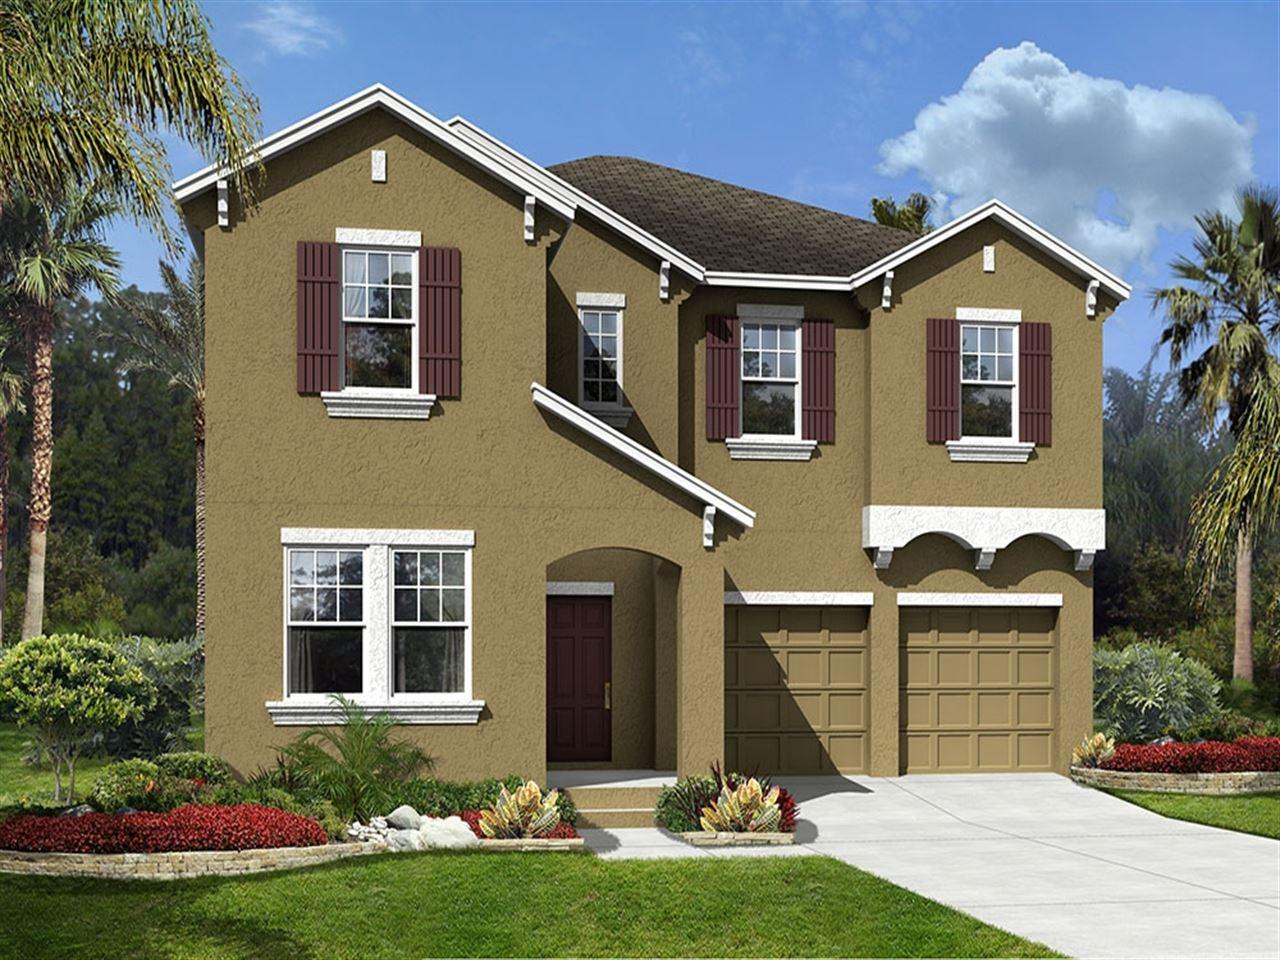 14442 magnolia ridge loop winter garden fl 34787 recently sold